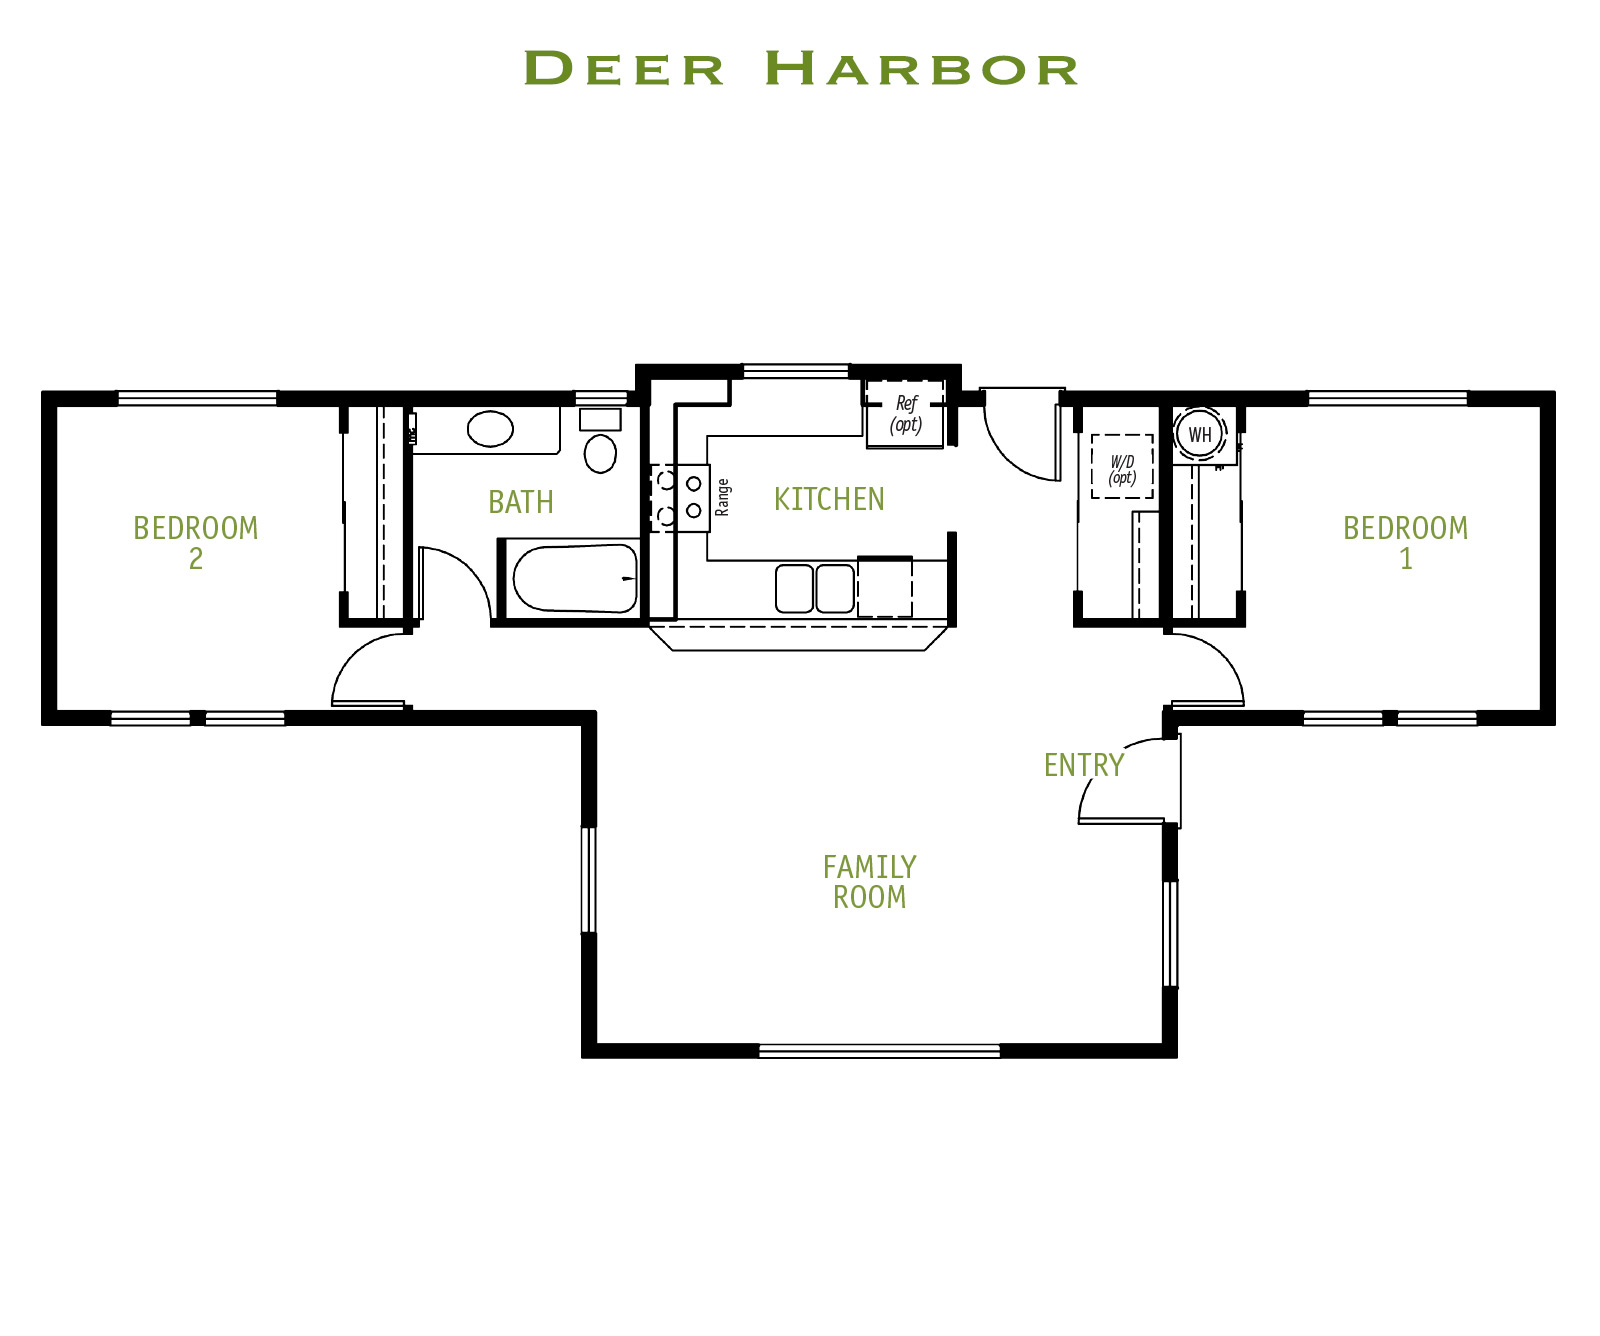 Timberland Homes Deer Harbor Floorplan